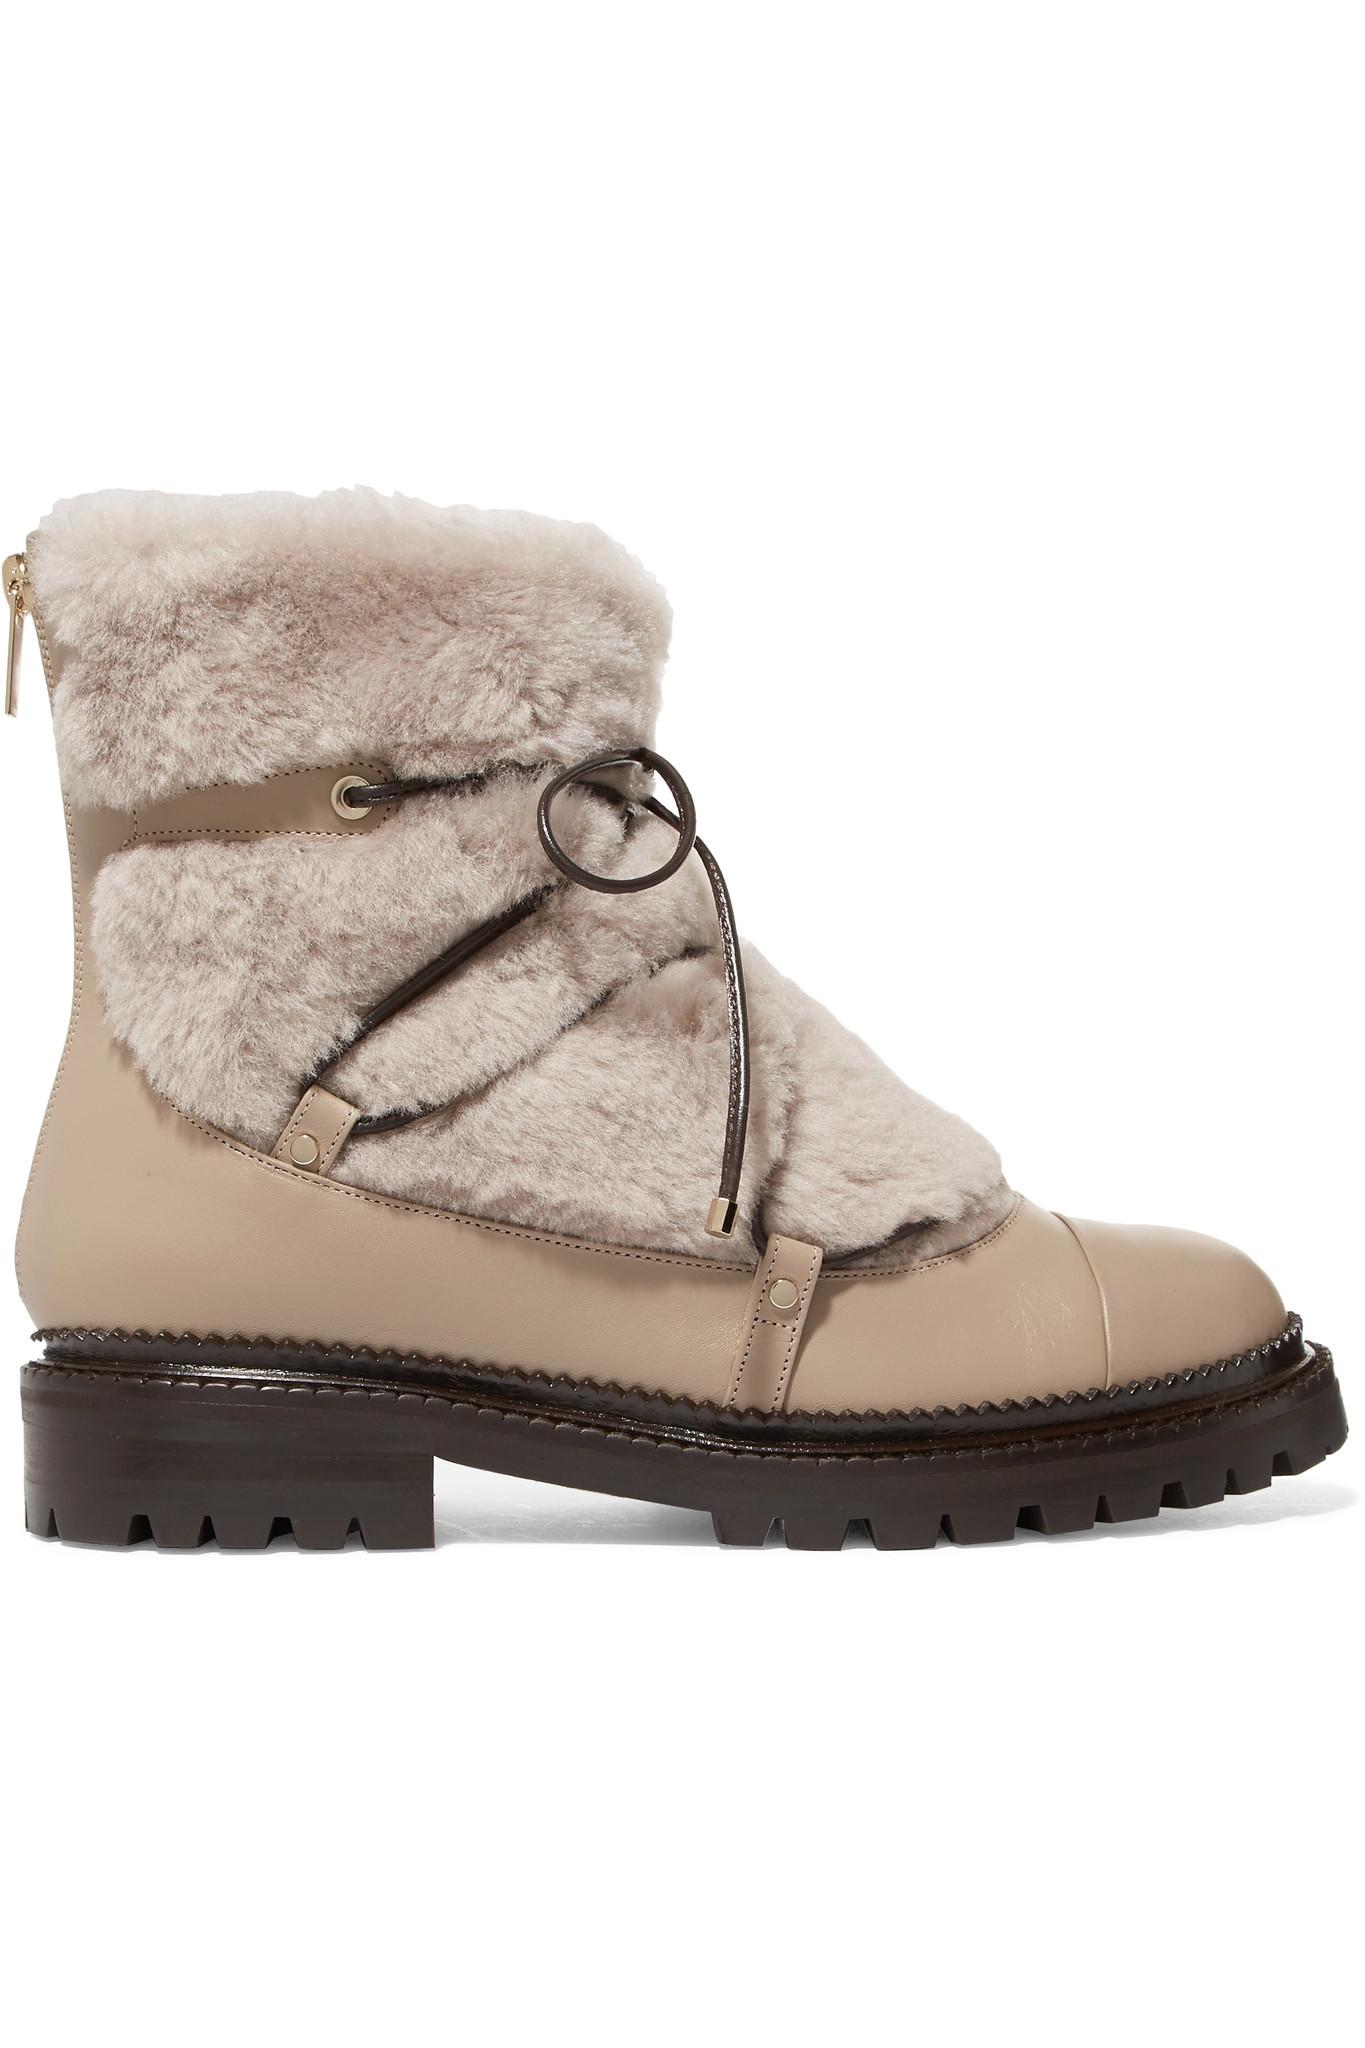 844600558c1 Jimmy Choo Darcie Shearling And Leather Ankle Boots in Natural - Lyst